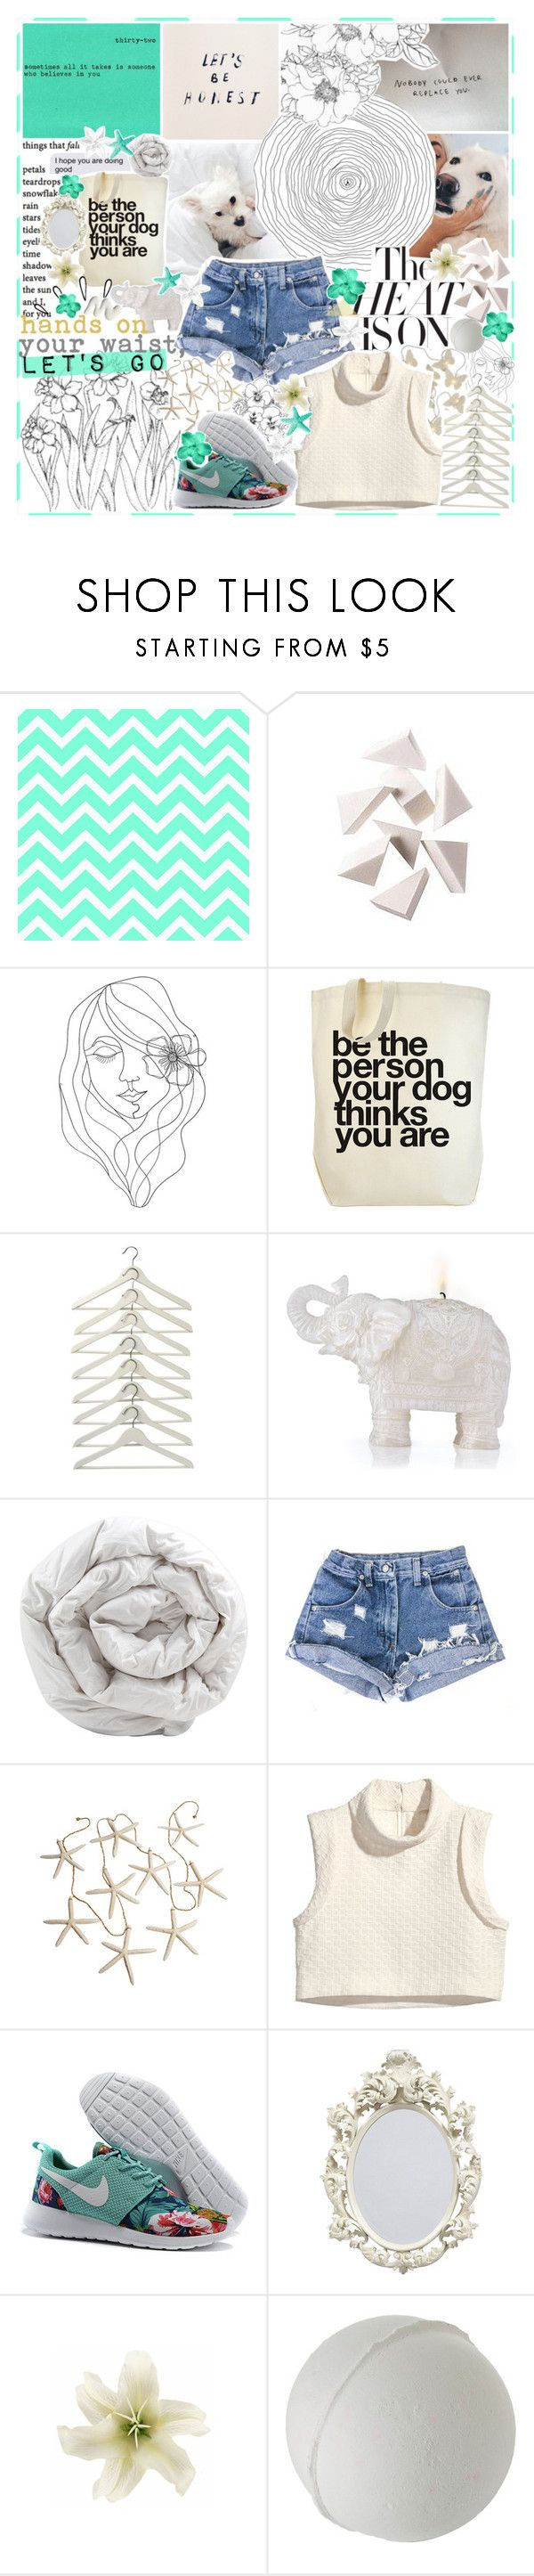 """701; it's hard to know what you see in me"" by lili-is-a-koala ❤ liked on Polyvore featuring GET LOST, Bobbi Brown Cosmetics, PBteen, Dogeared, Brinkhaus, Prada, H&M, Clips and Old Navy"